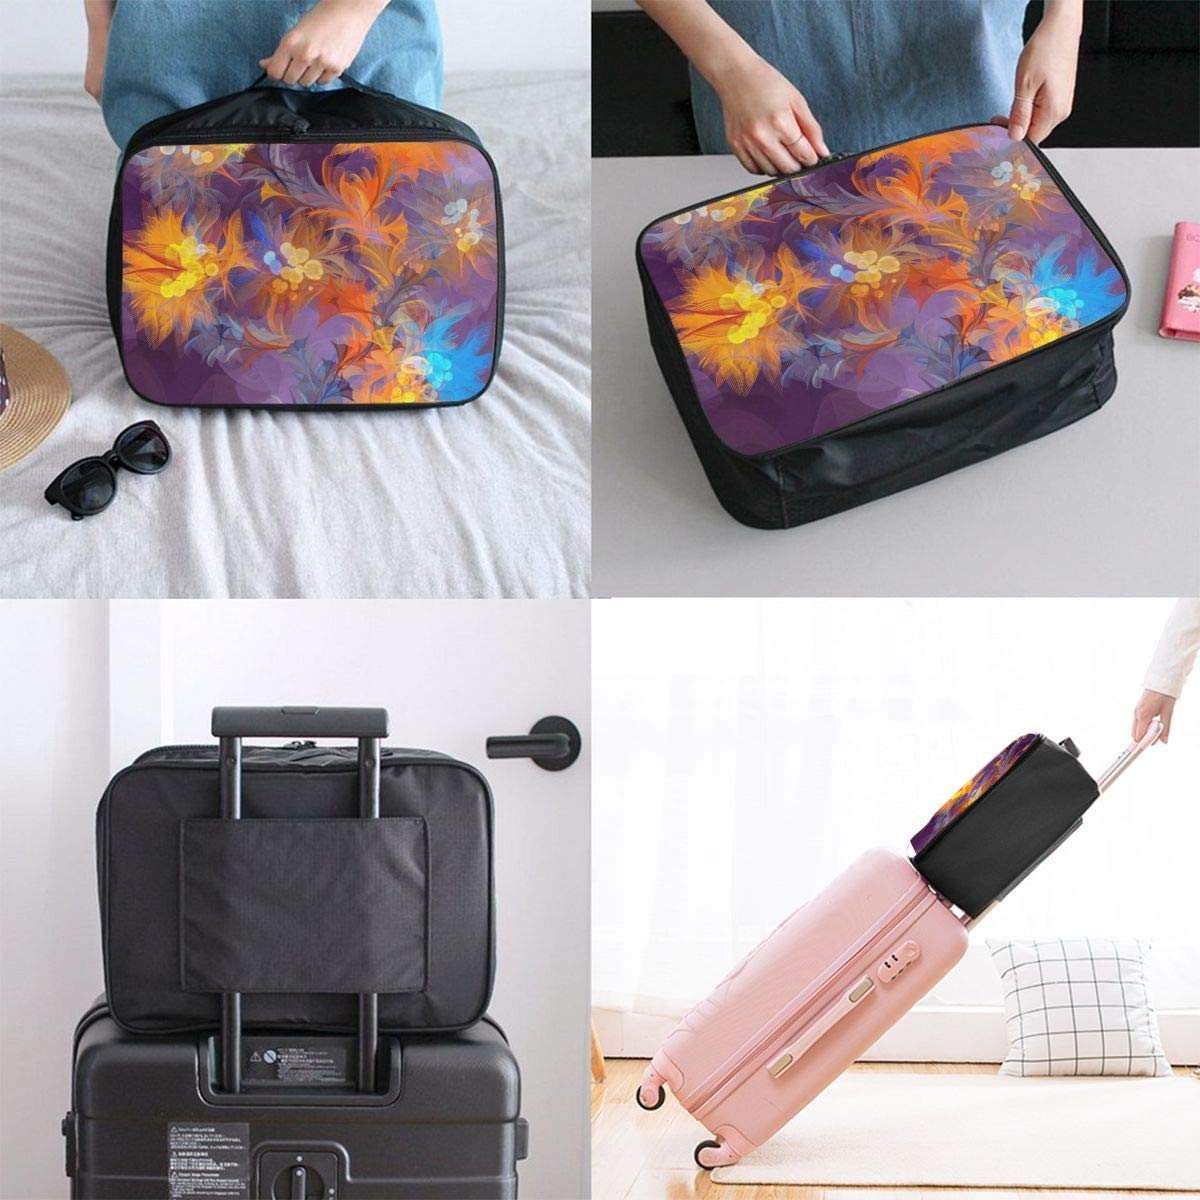 Art Abstract Flower Color Travel Lightweight Waterproof Foldable Storage Carry Luggage Large Capacity Portable Luggage Bag Duffel Bag